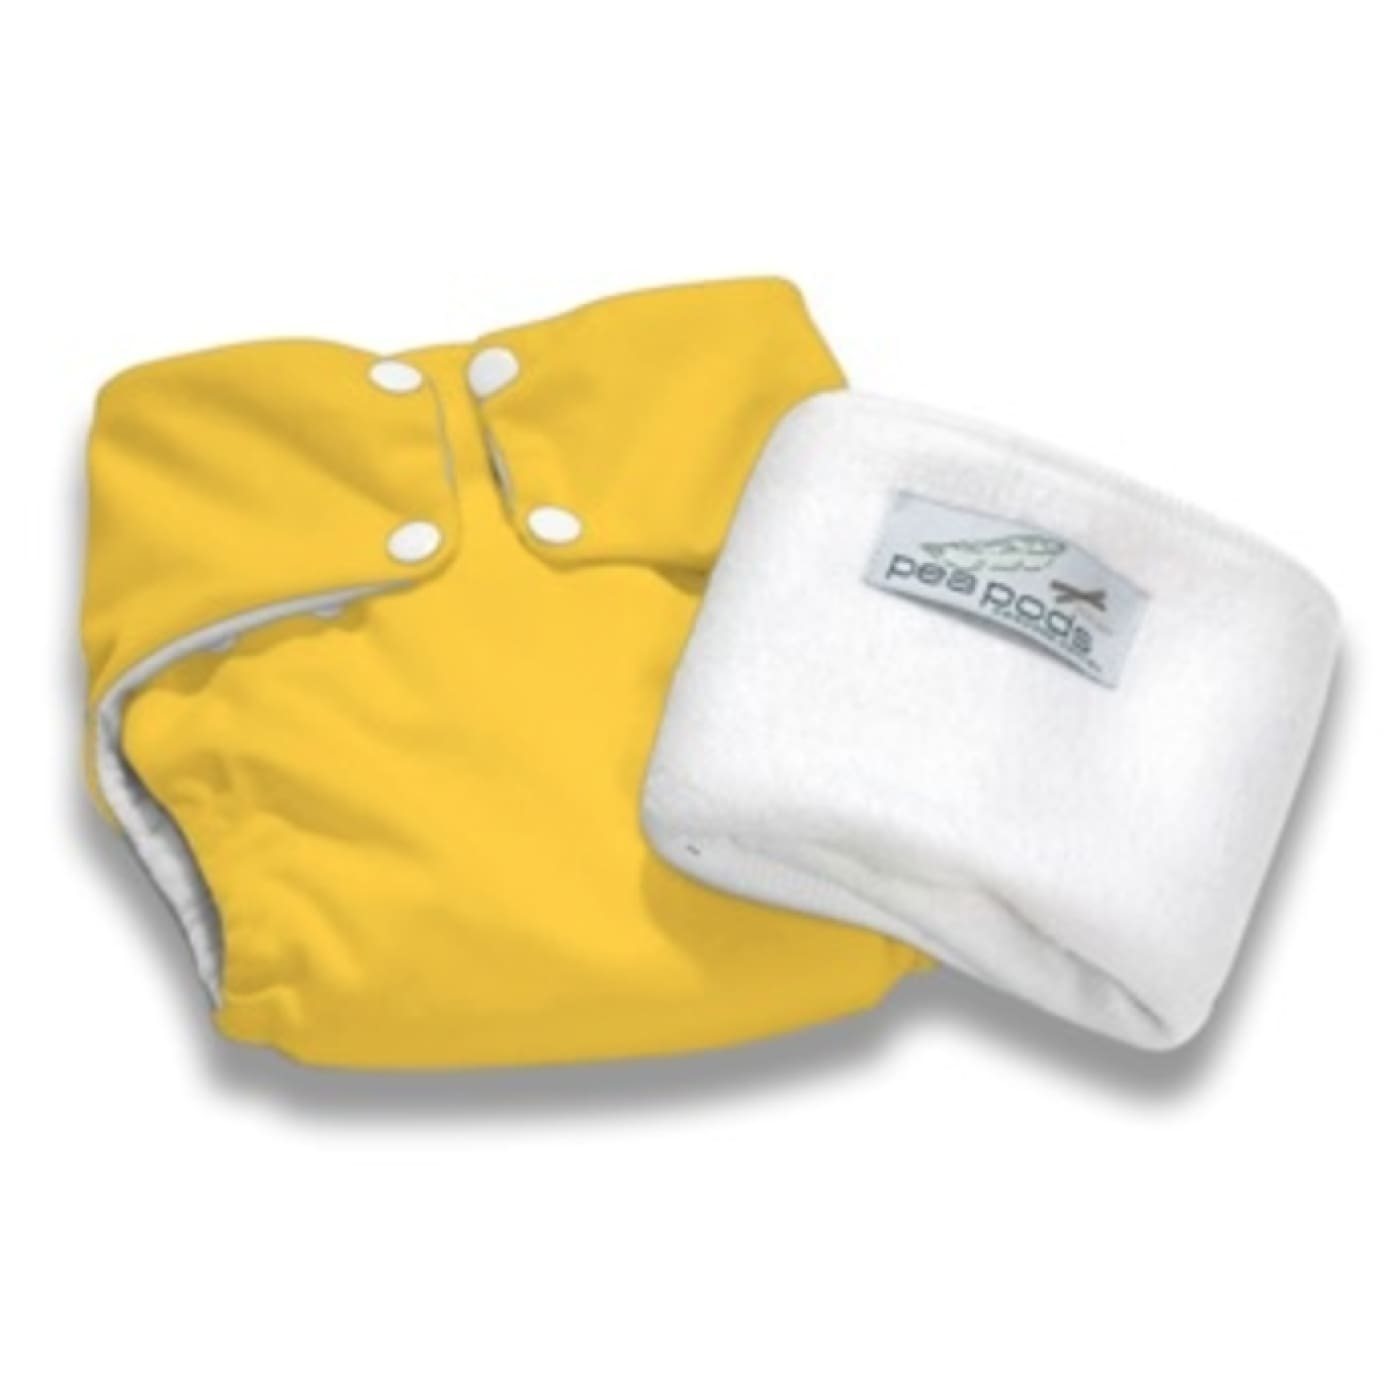 Pea Pods One Size Fits All Nappy - Bright yellow - BATHTIME & CHANGING - NAPPIES/WIPES/ACC ECO RANGE